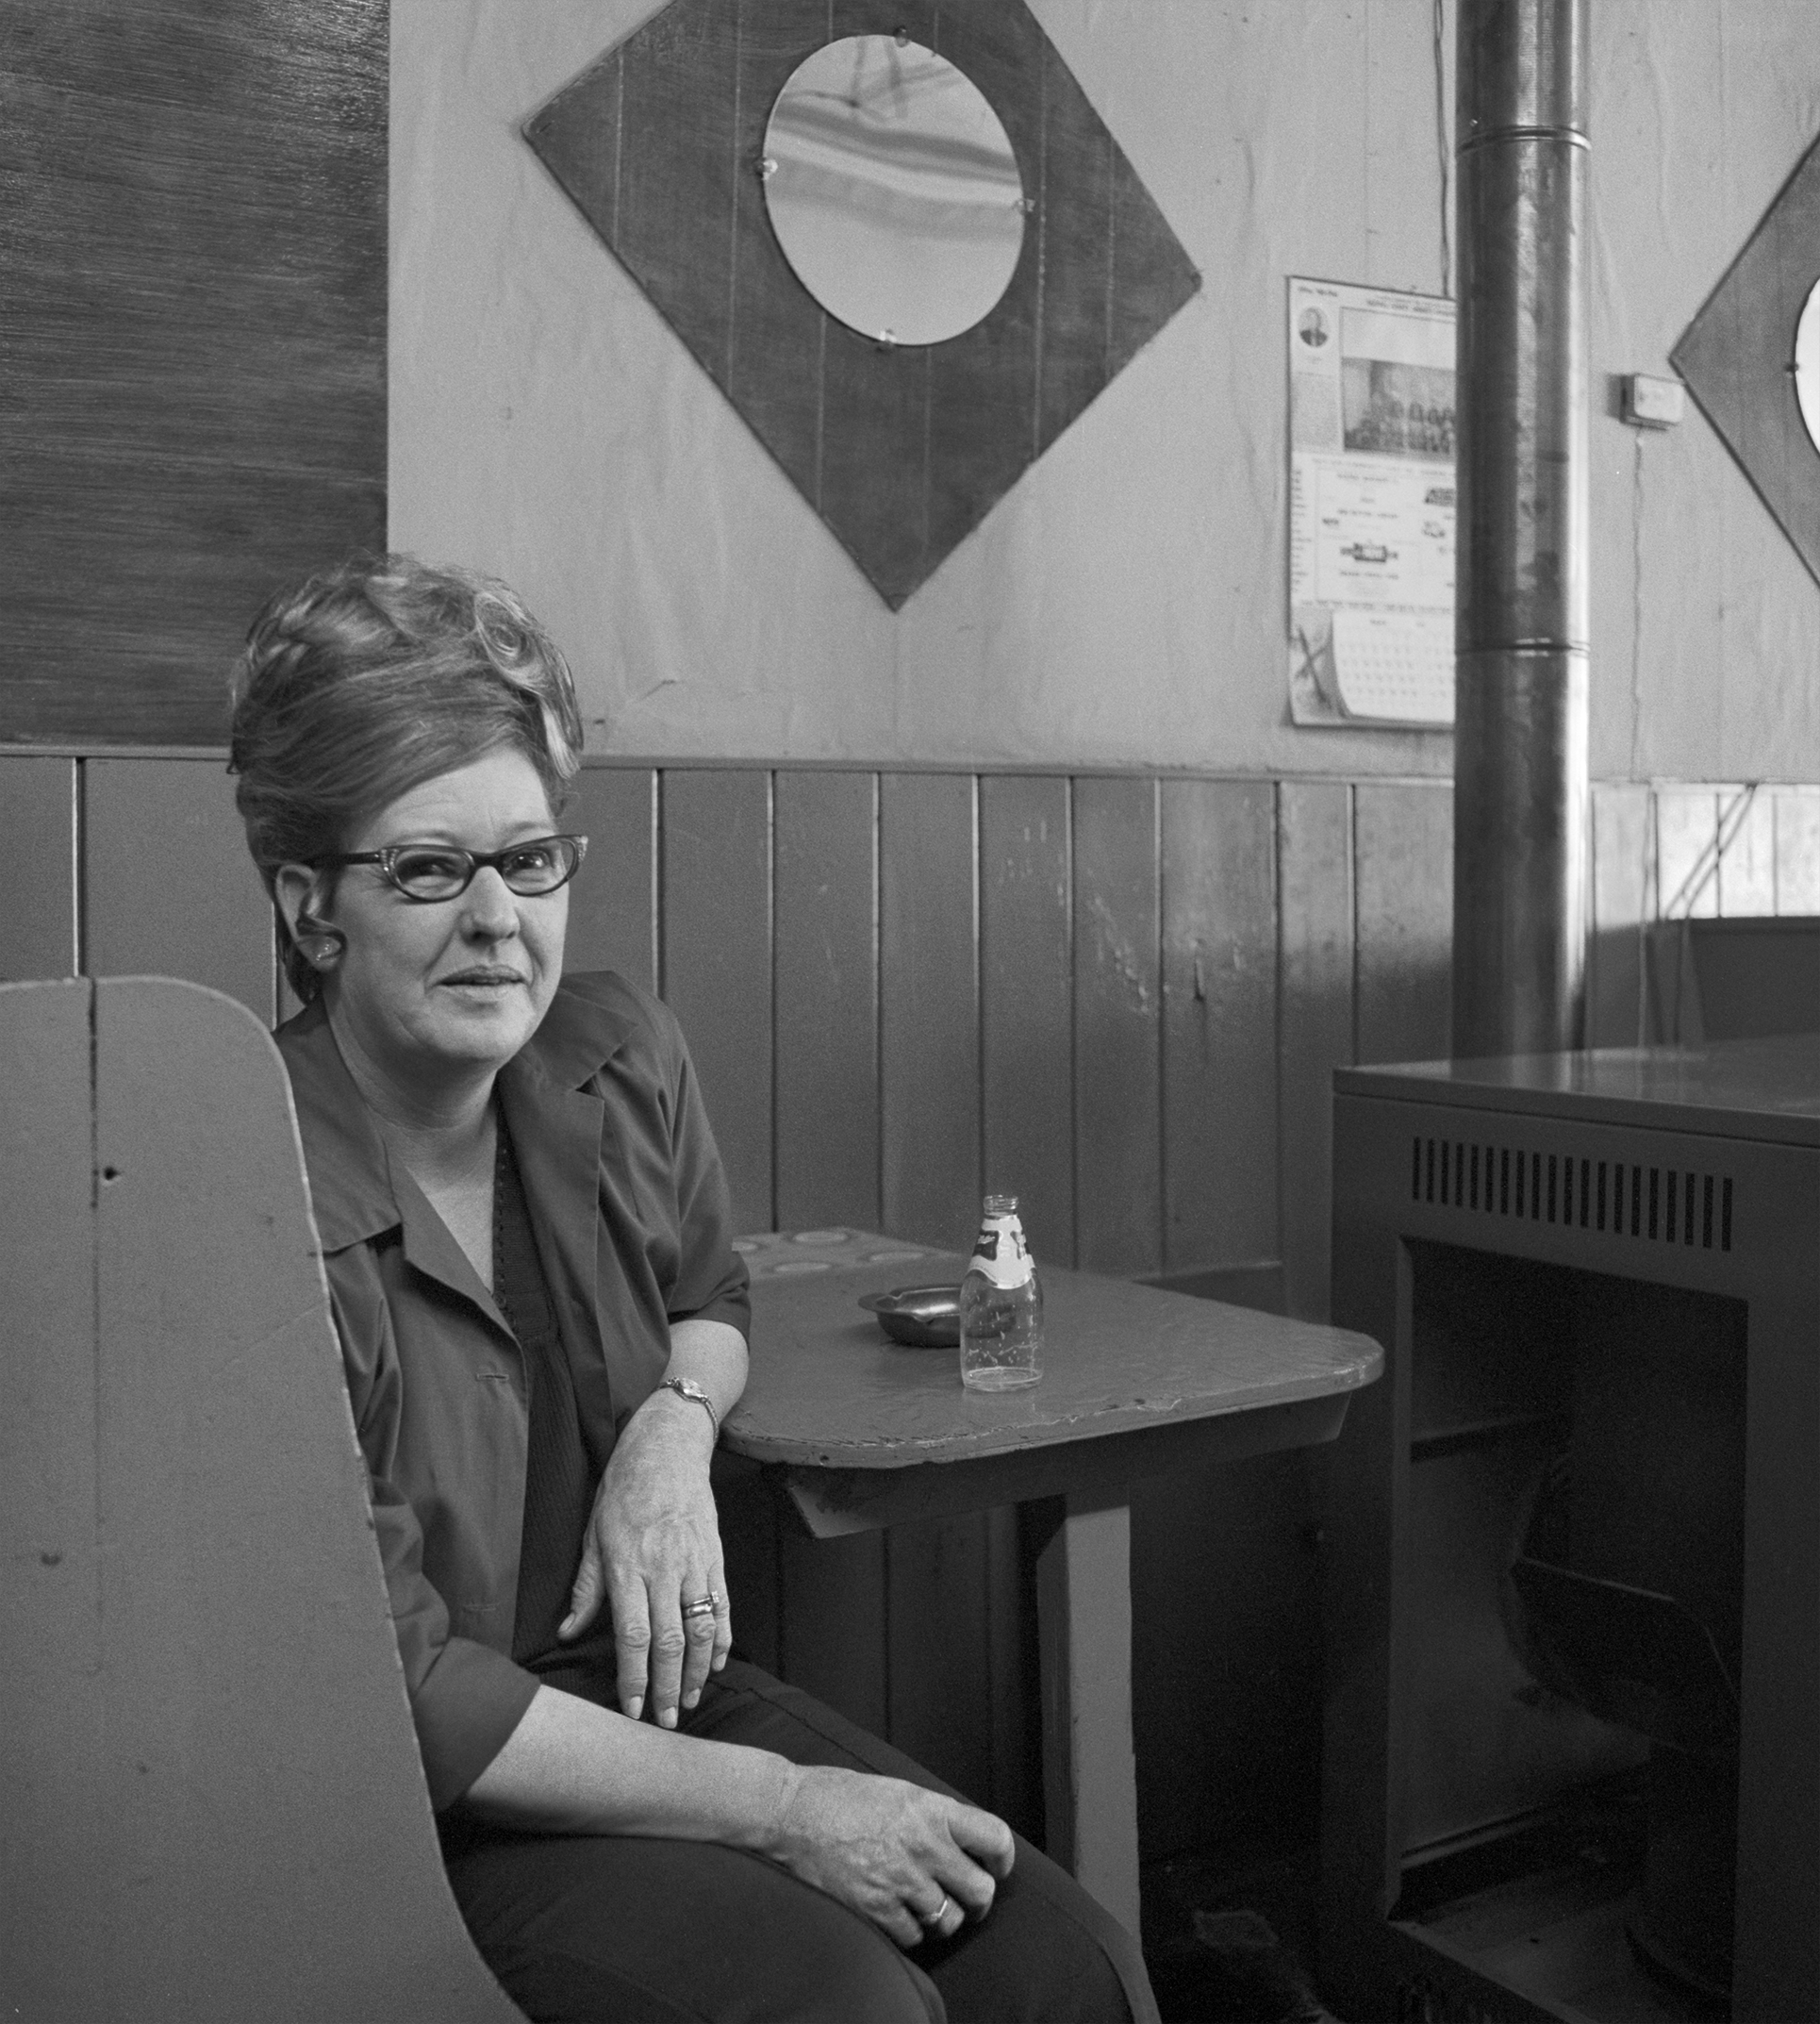 Dessie Higgenbottom Proprietress Dessie's Bar & Grill, Pocahontas, VA 1974. Photo courtesy of the Grohmann Museum.